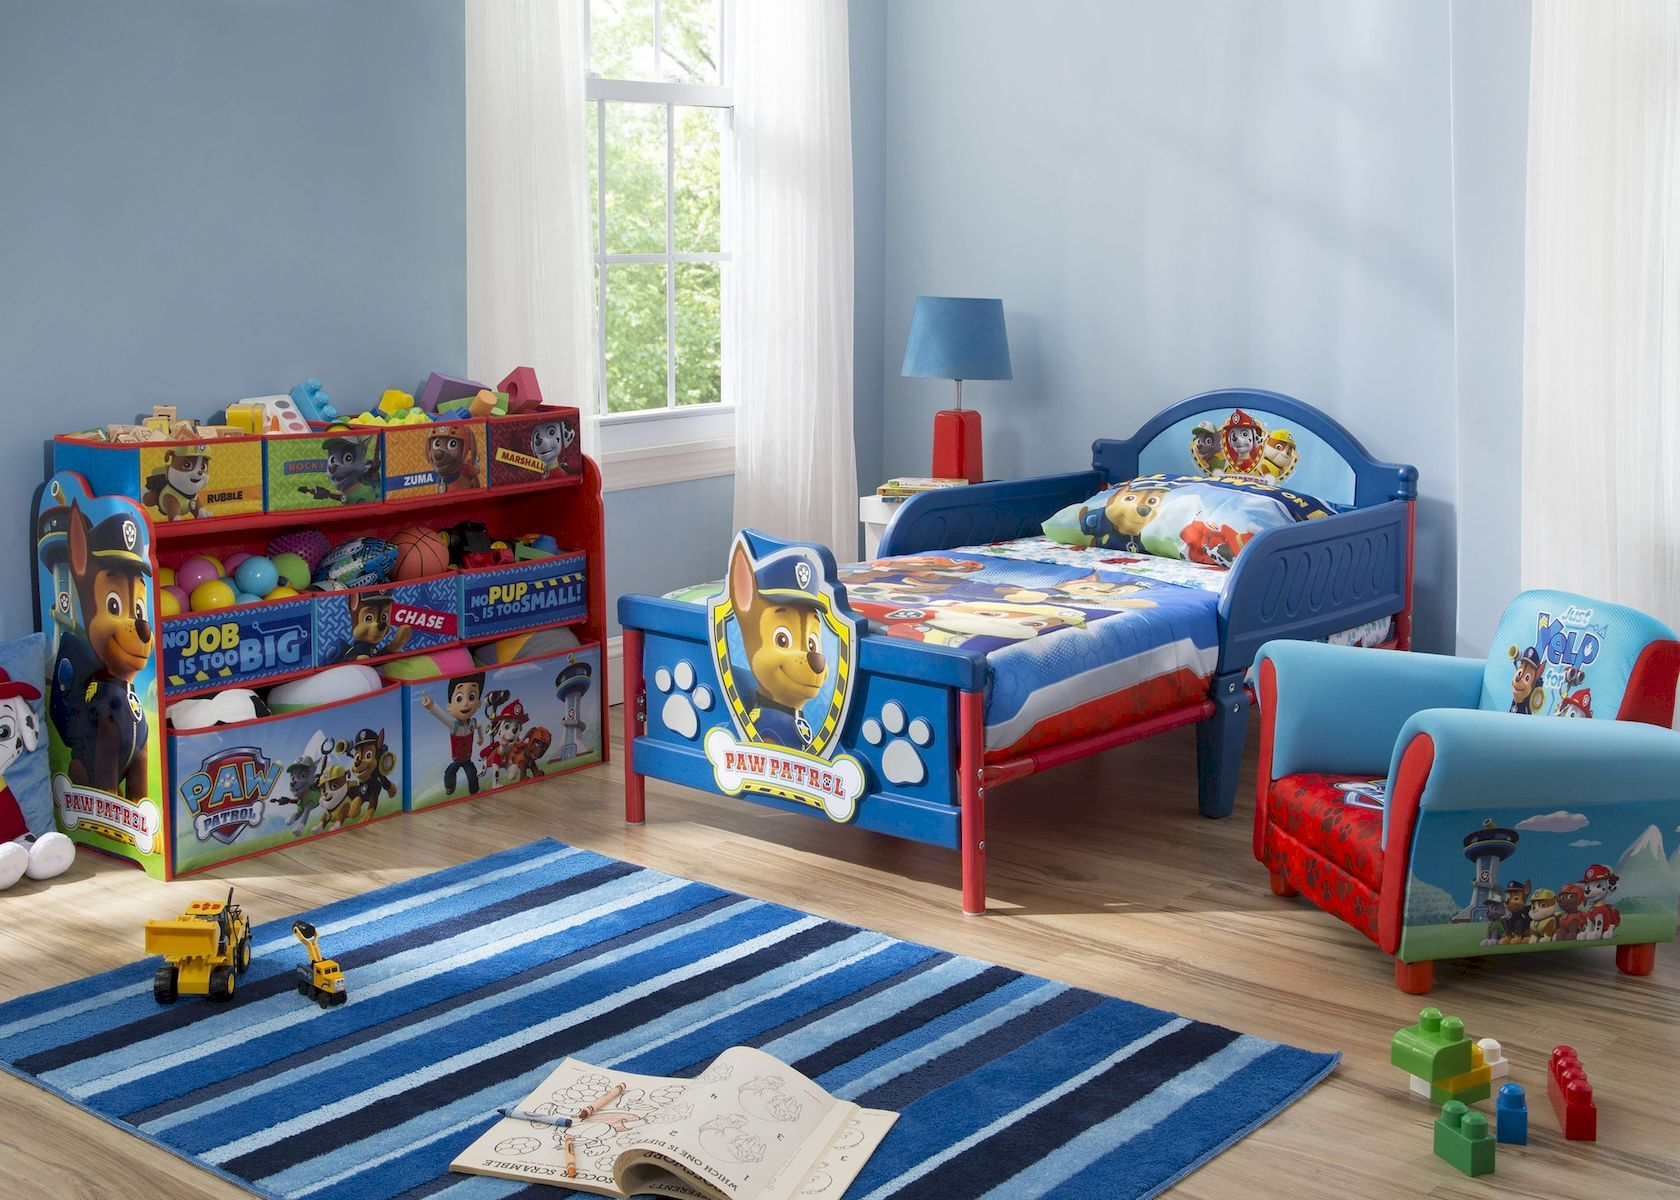 Nice Atractive Boys Bedroom Ideas For Todlerhttps Paguponhome Com Atractive Boys Bedroom Ideas Fo Toddler Boy Room Themes Toddler Kids Bed Paw Patrol Bedroom